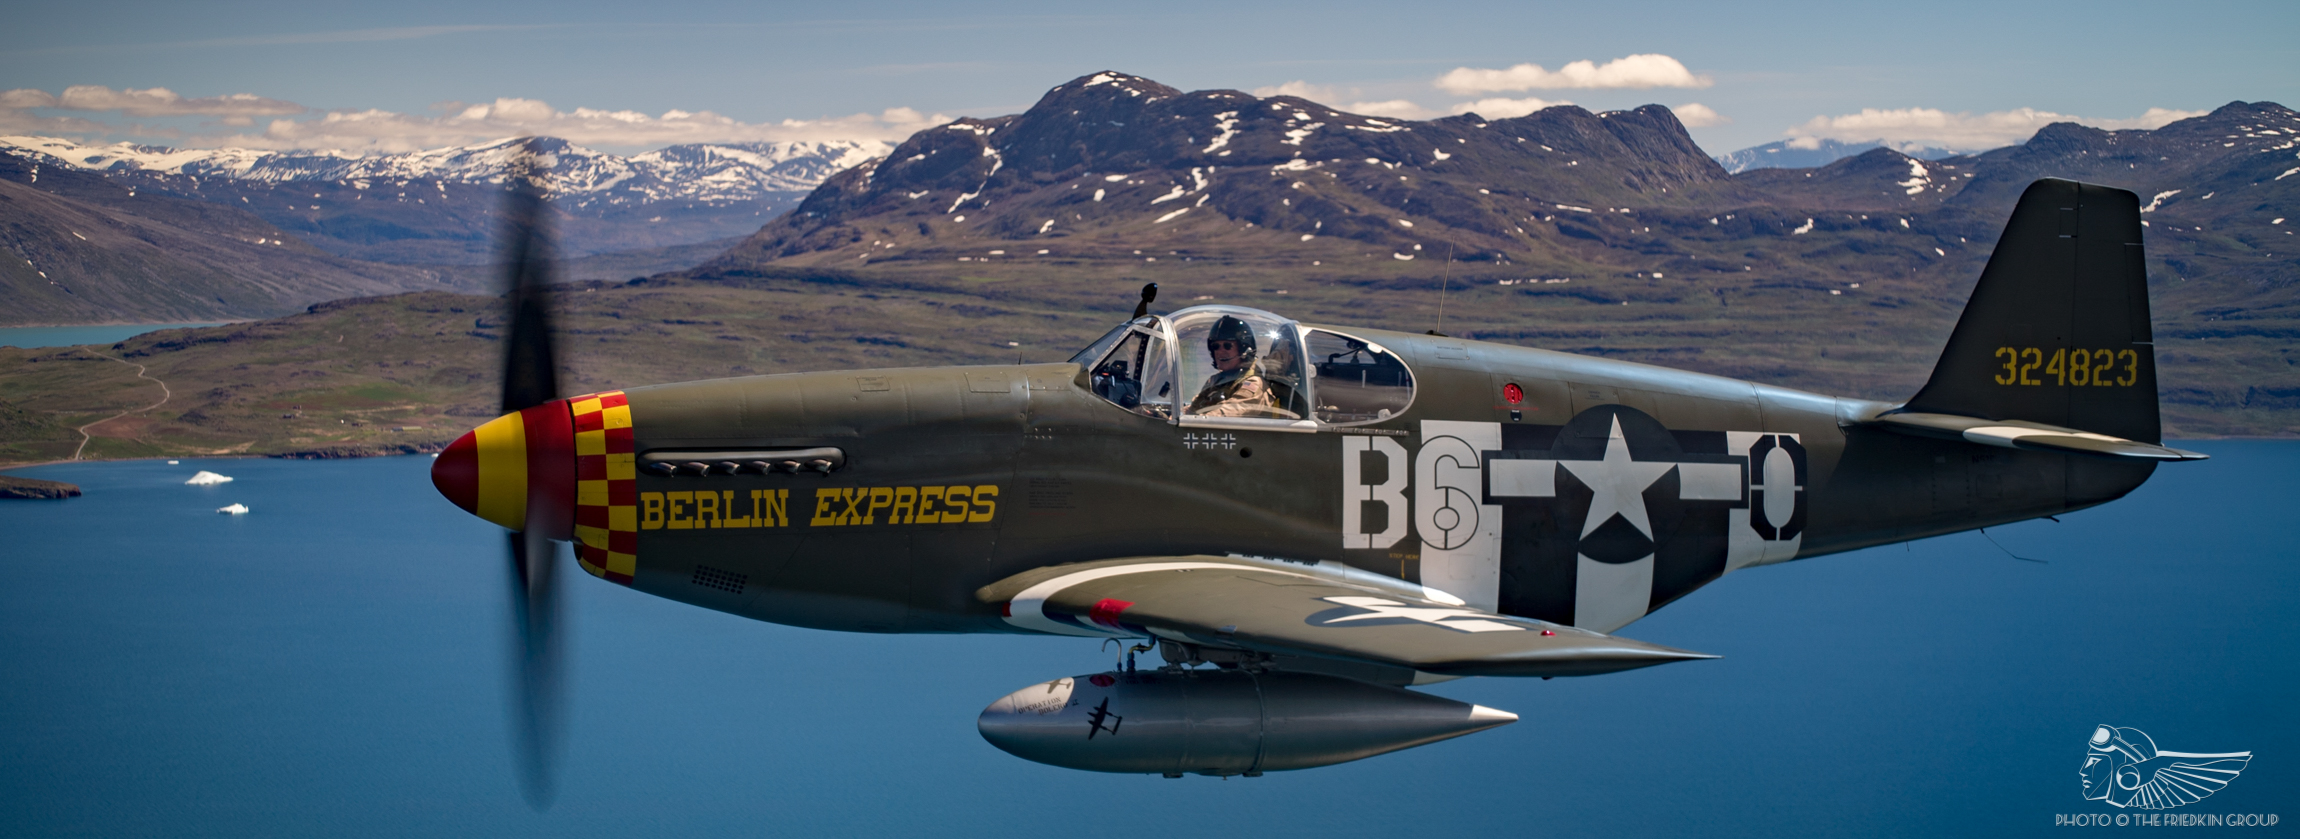 Crossing the Atlantic Ocean in P-51B Mustang 'Berlin Express'